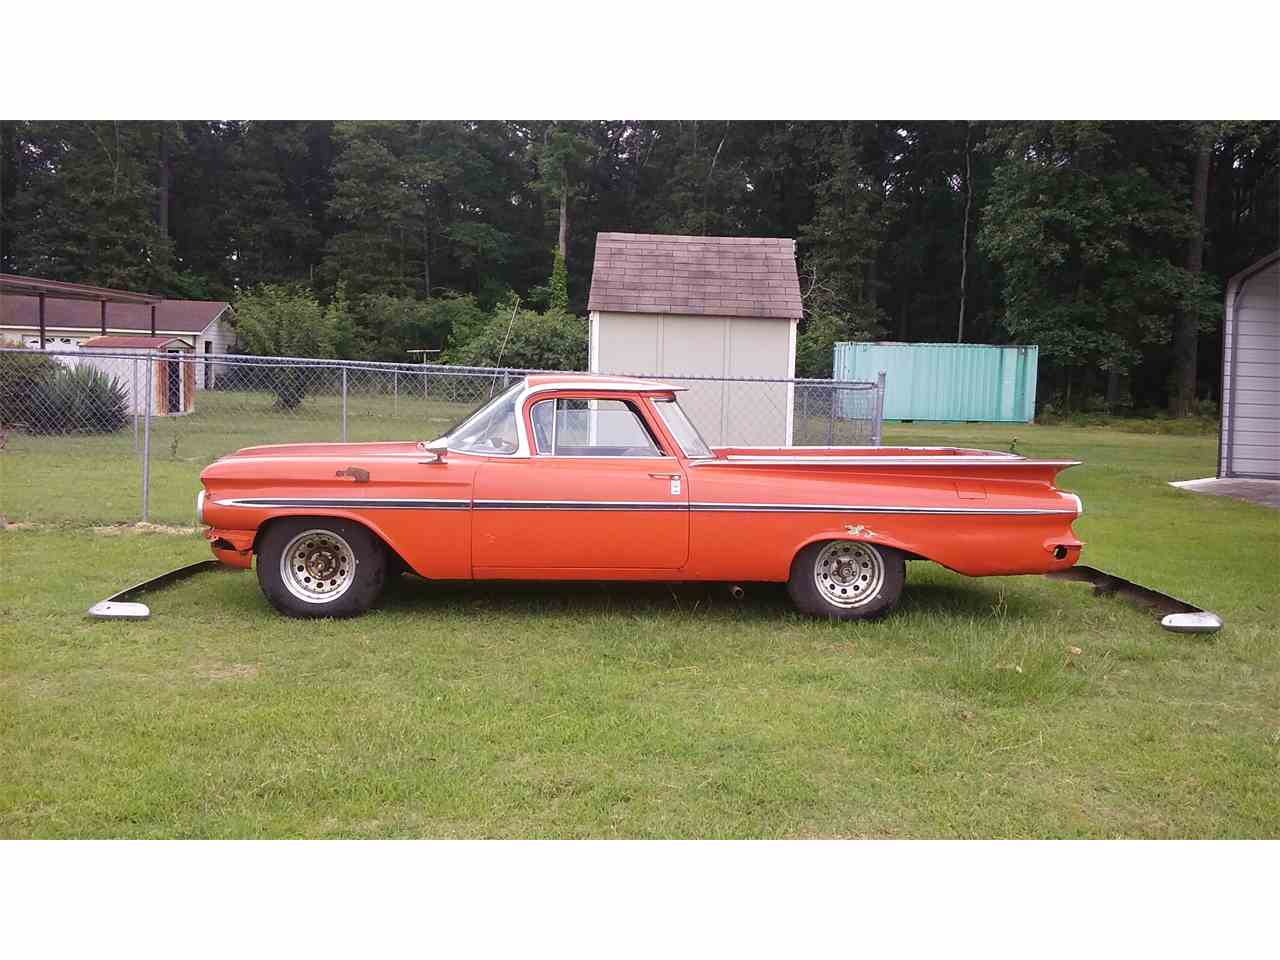 Large Picture of '59 El Camino located in Darlington South Carolina - $9,500.00 Offered by a Private Seller - IWY1